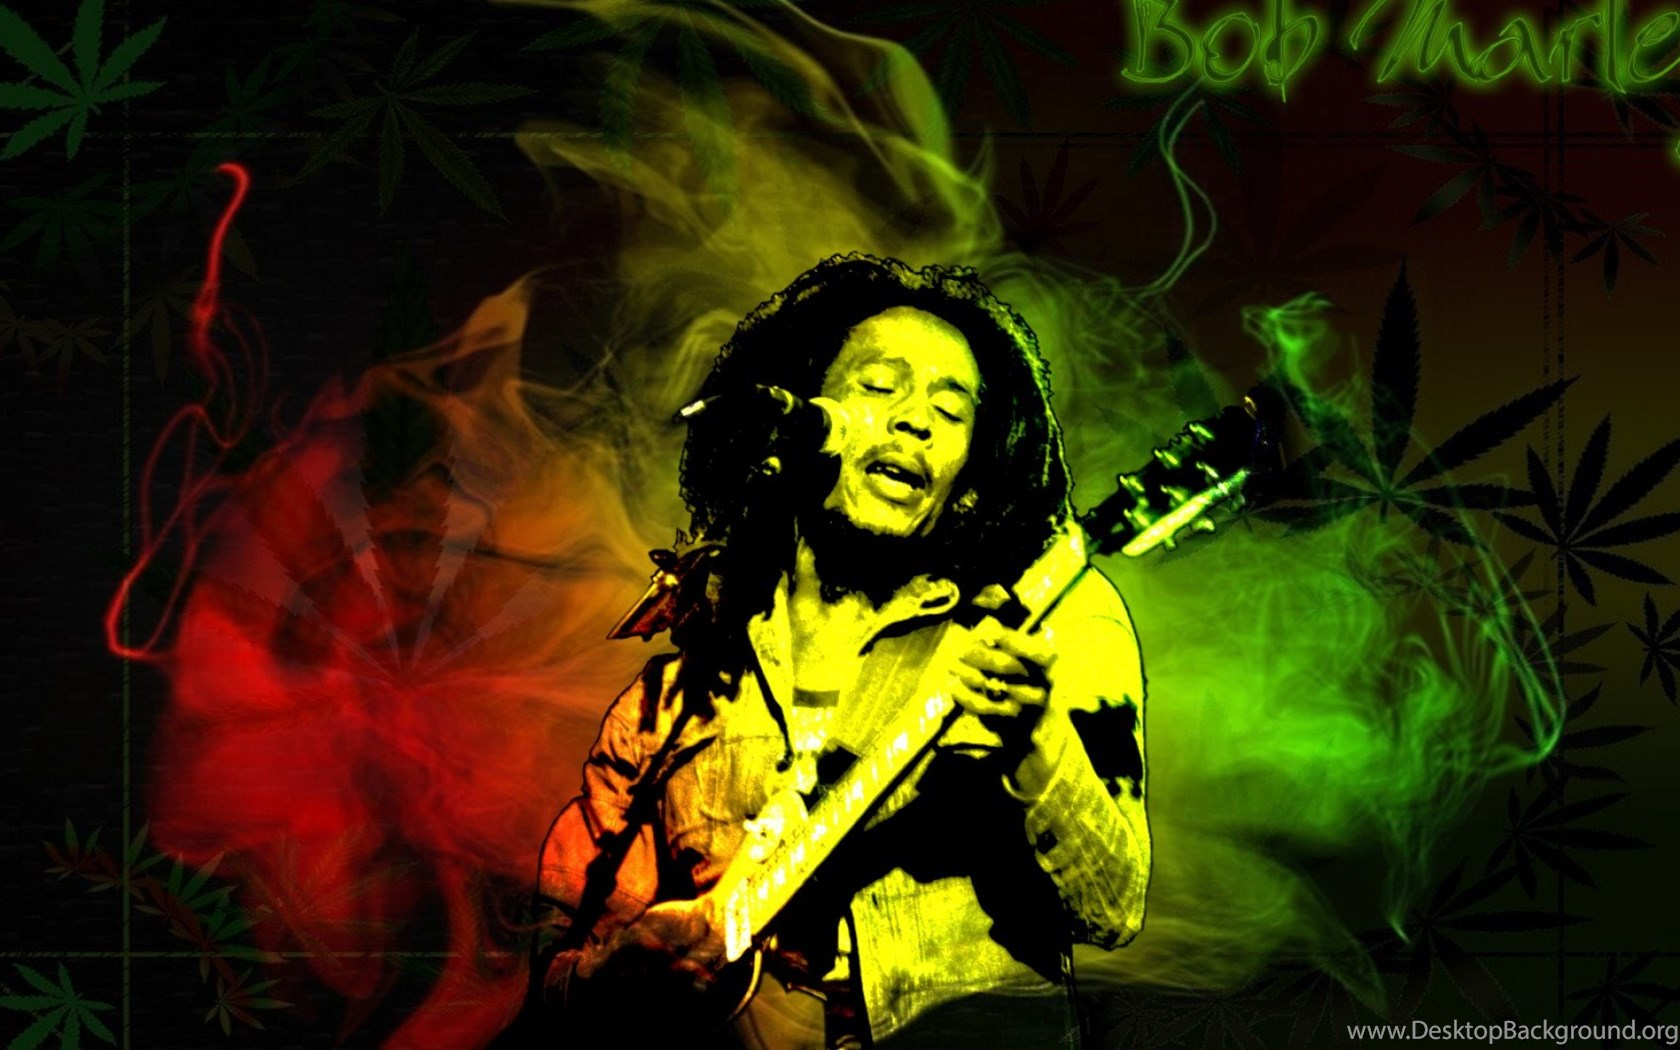 Bob marley hd wallpapers for desktop download desktop background - Rasta bob live wallpaper free download ...